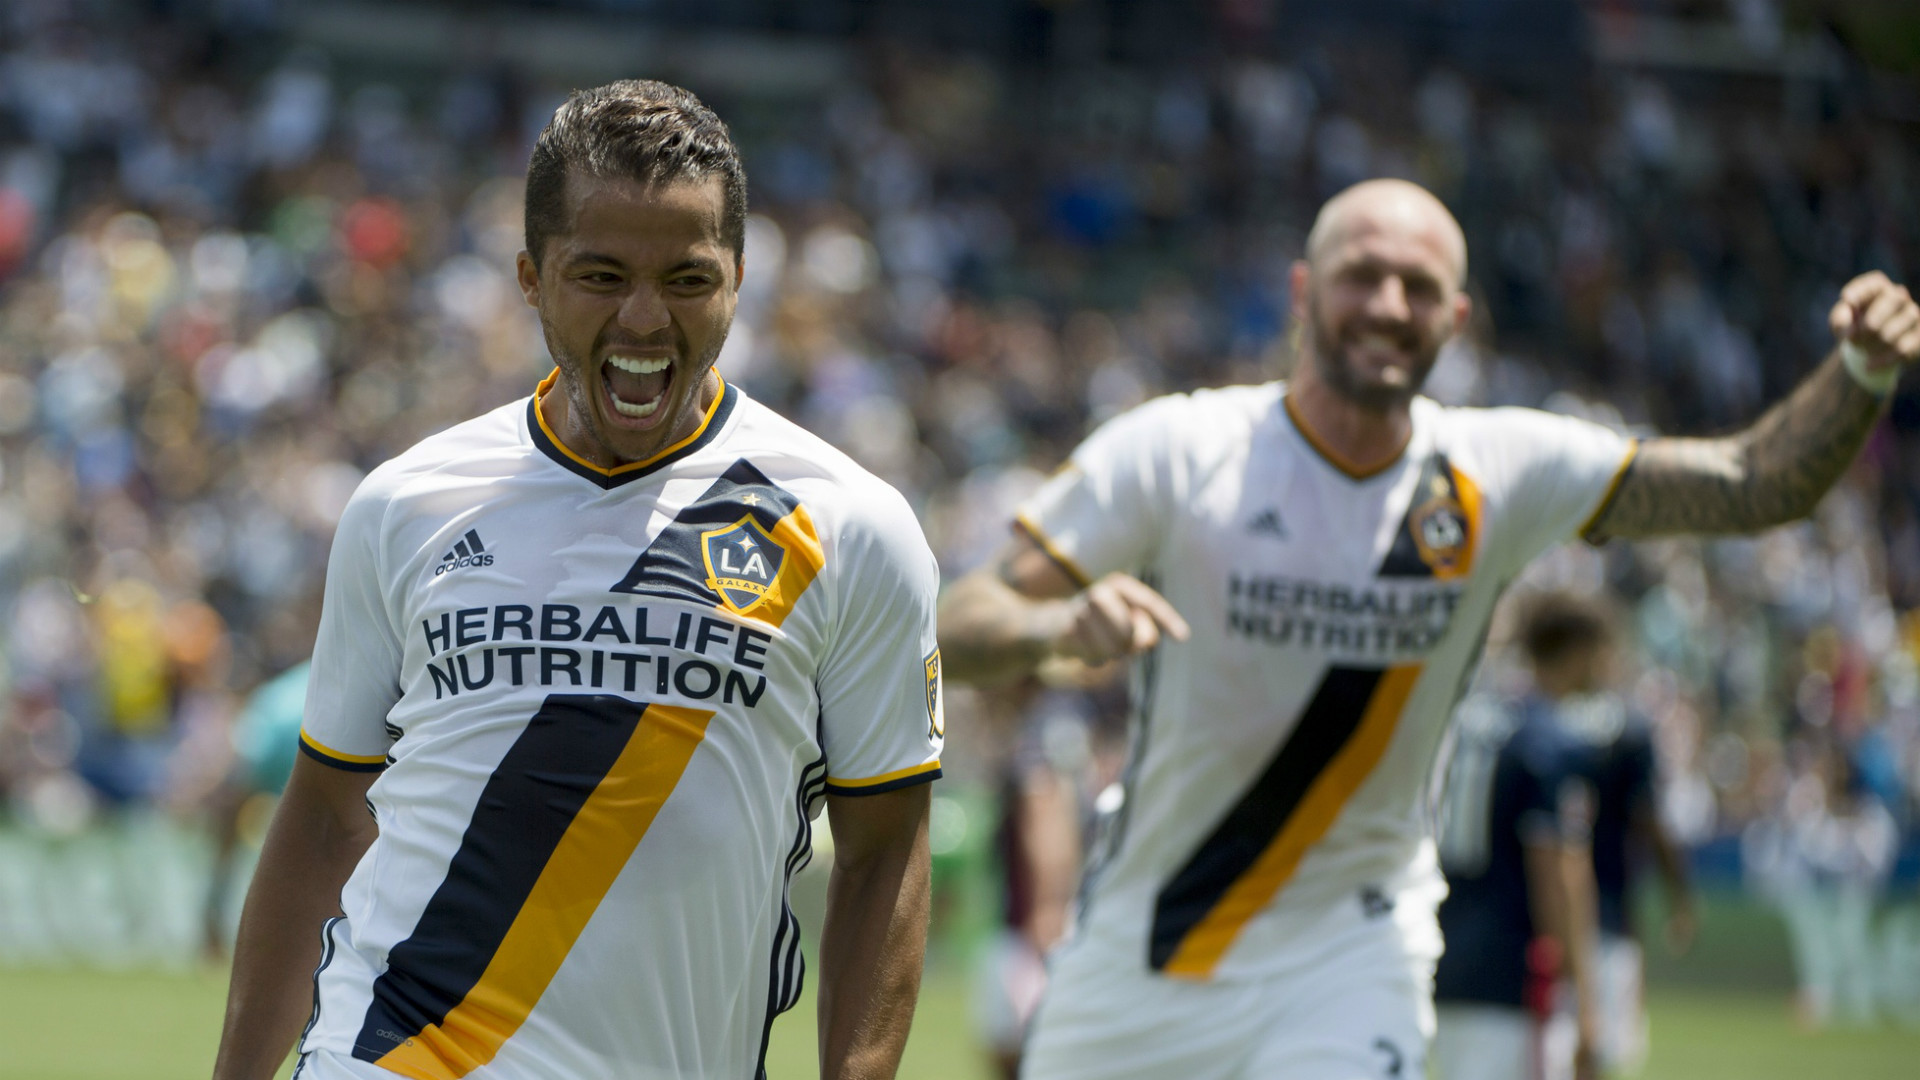 La Galaxy  Mls Season Preview Roster Schedule National Tv Info And More Goal Com